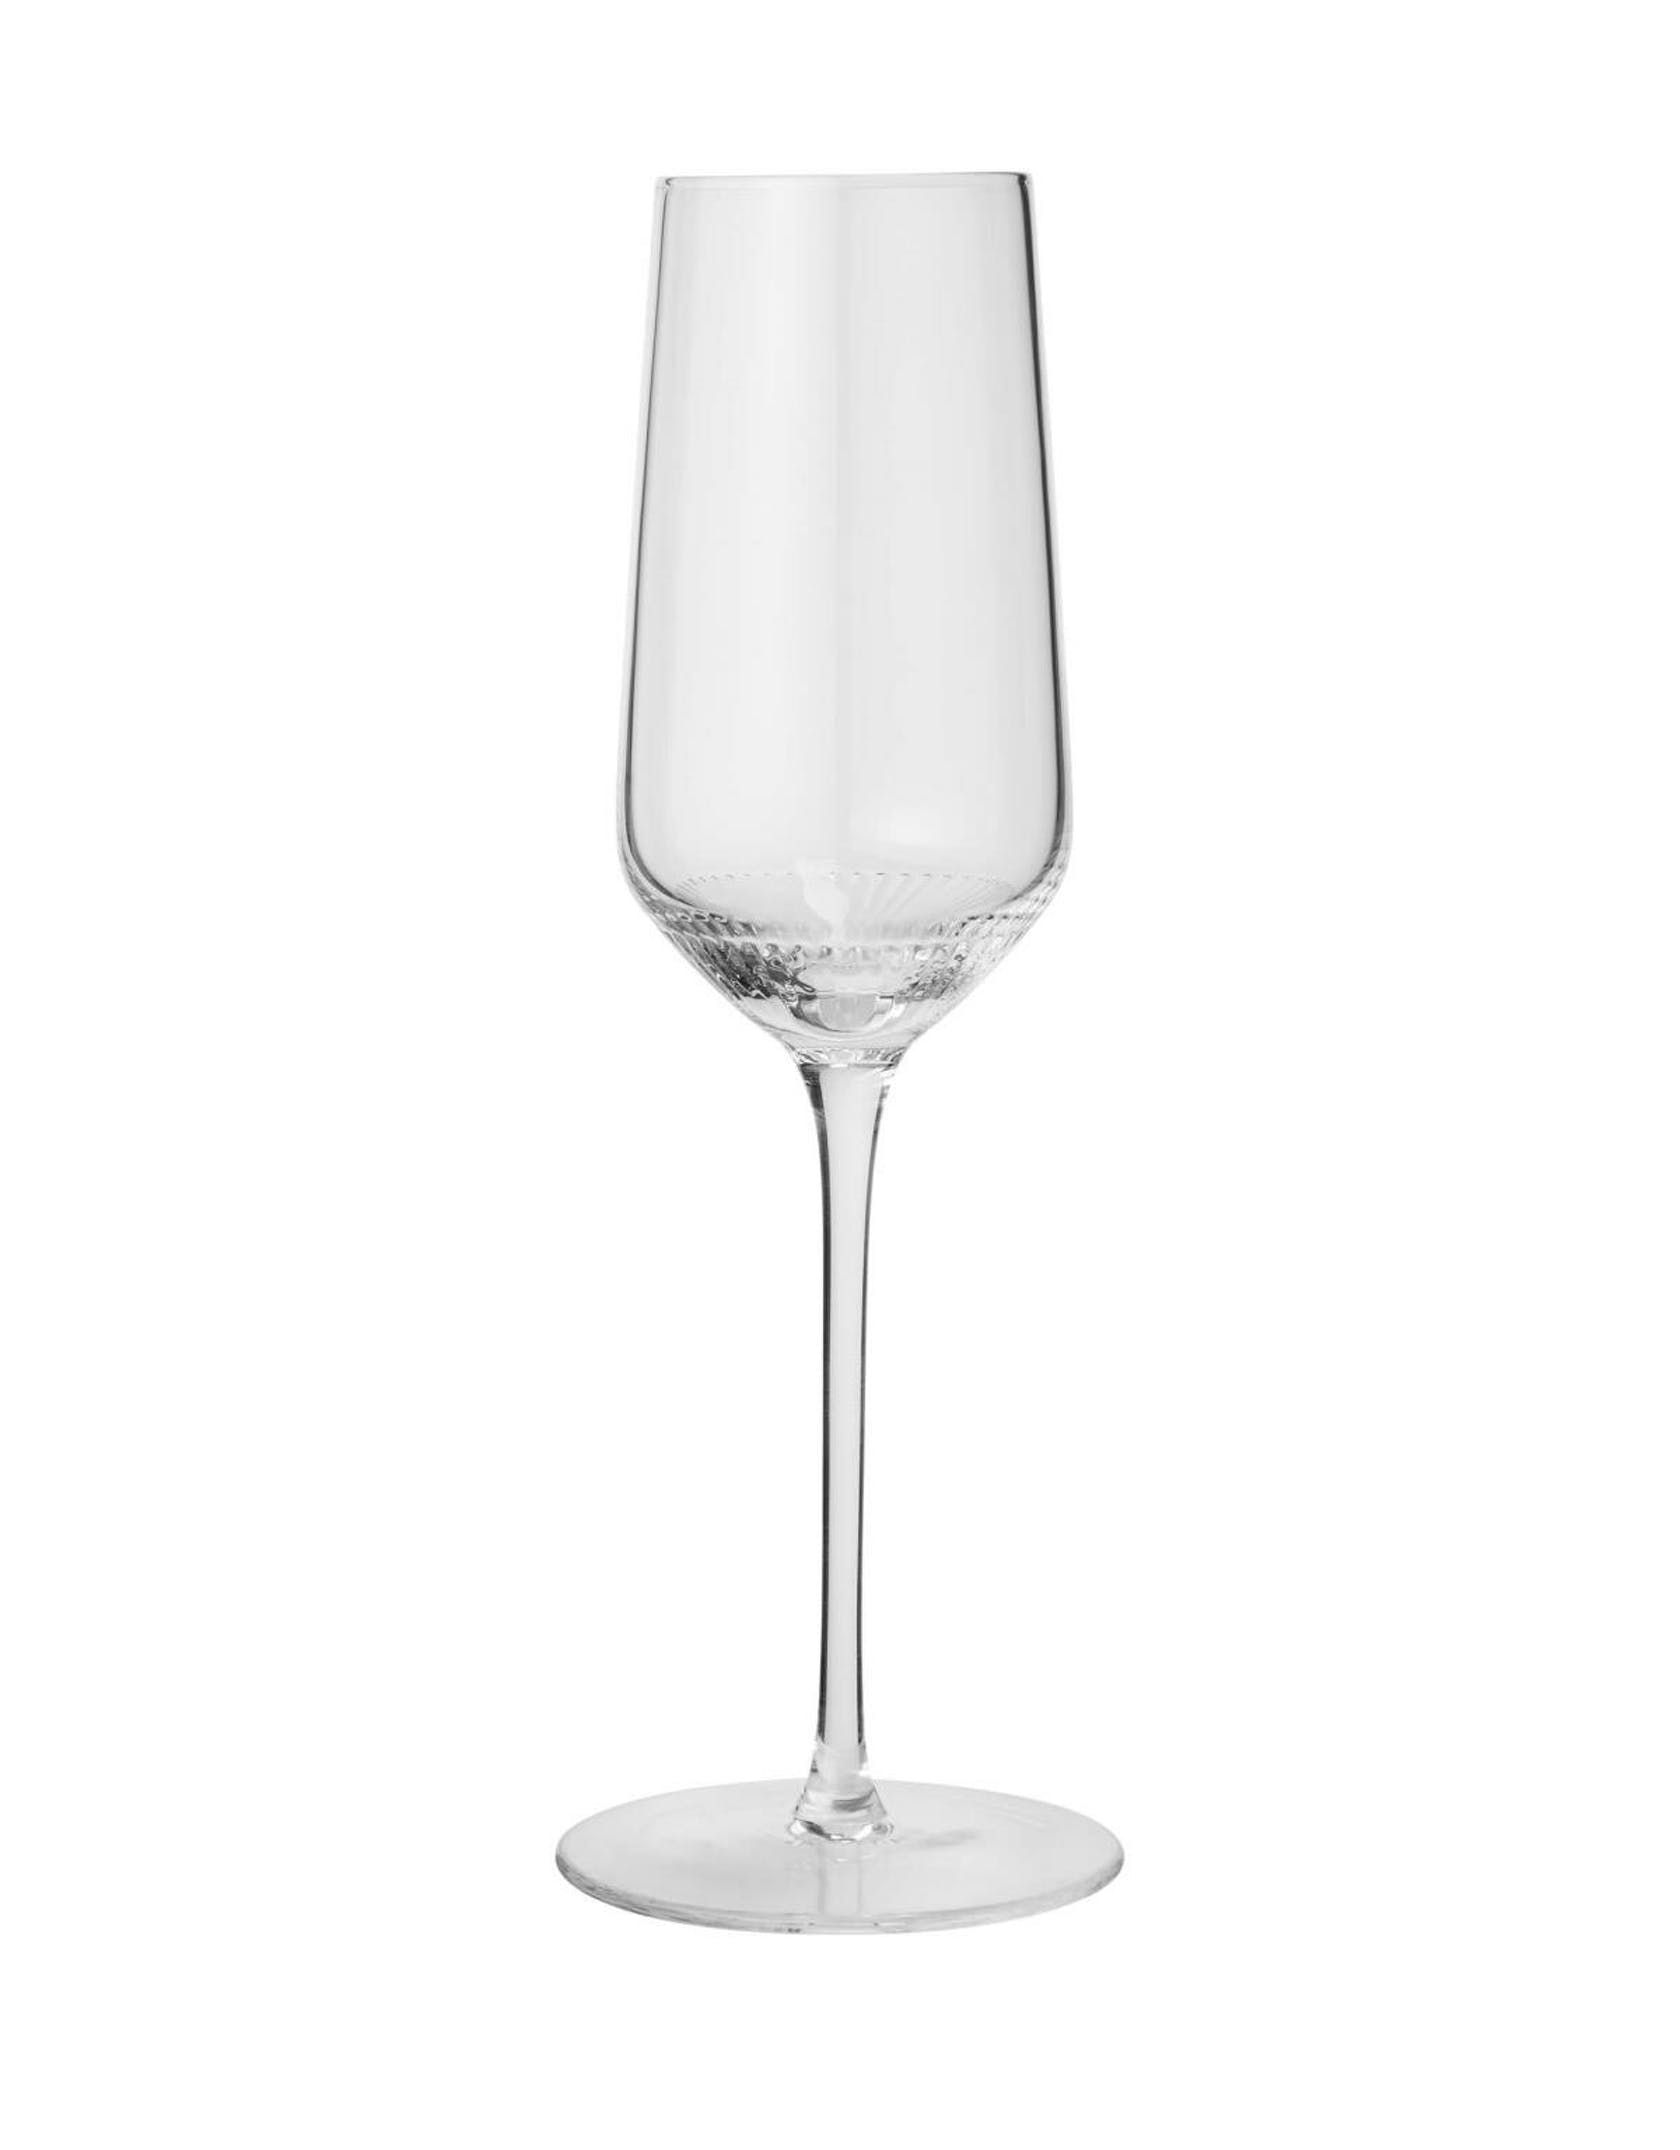 Marc O'Polo Moments Transparent Champagne glass 22 cl